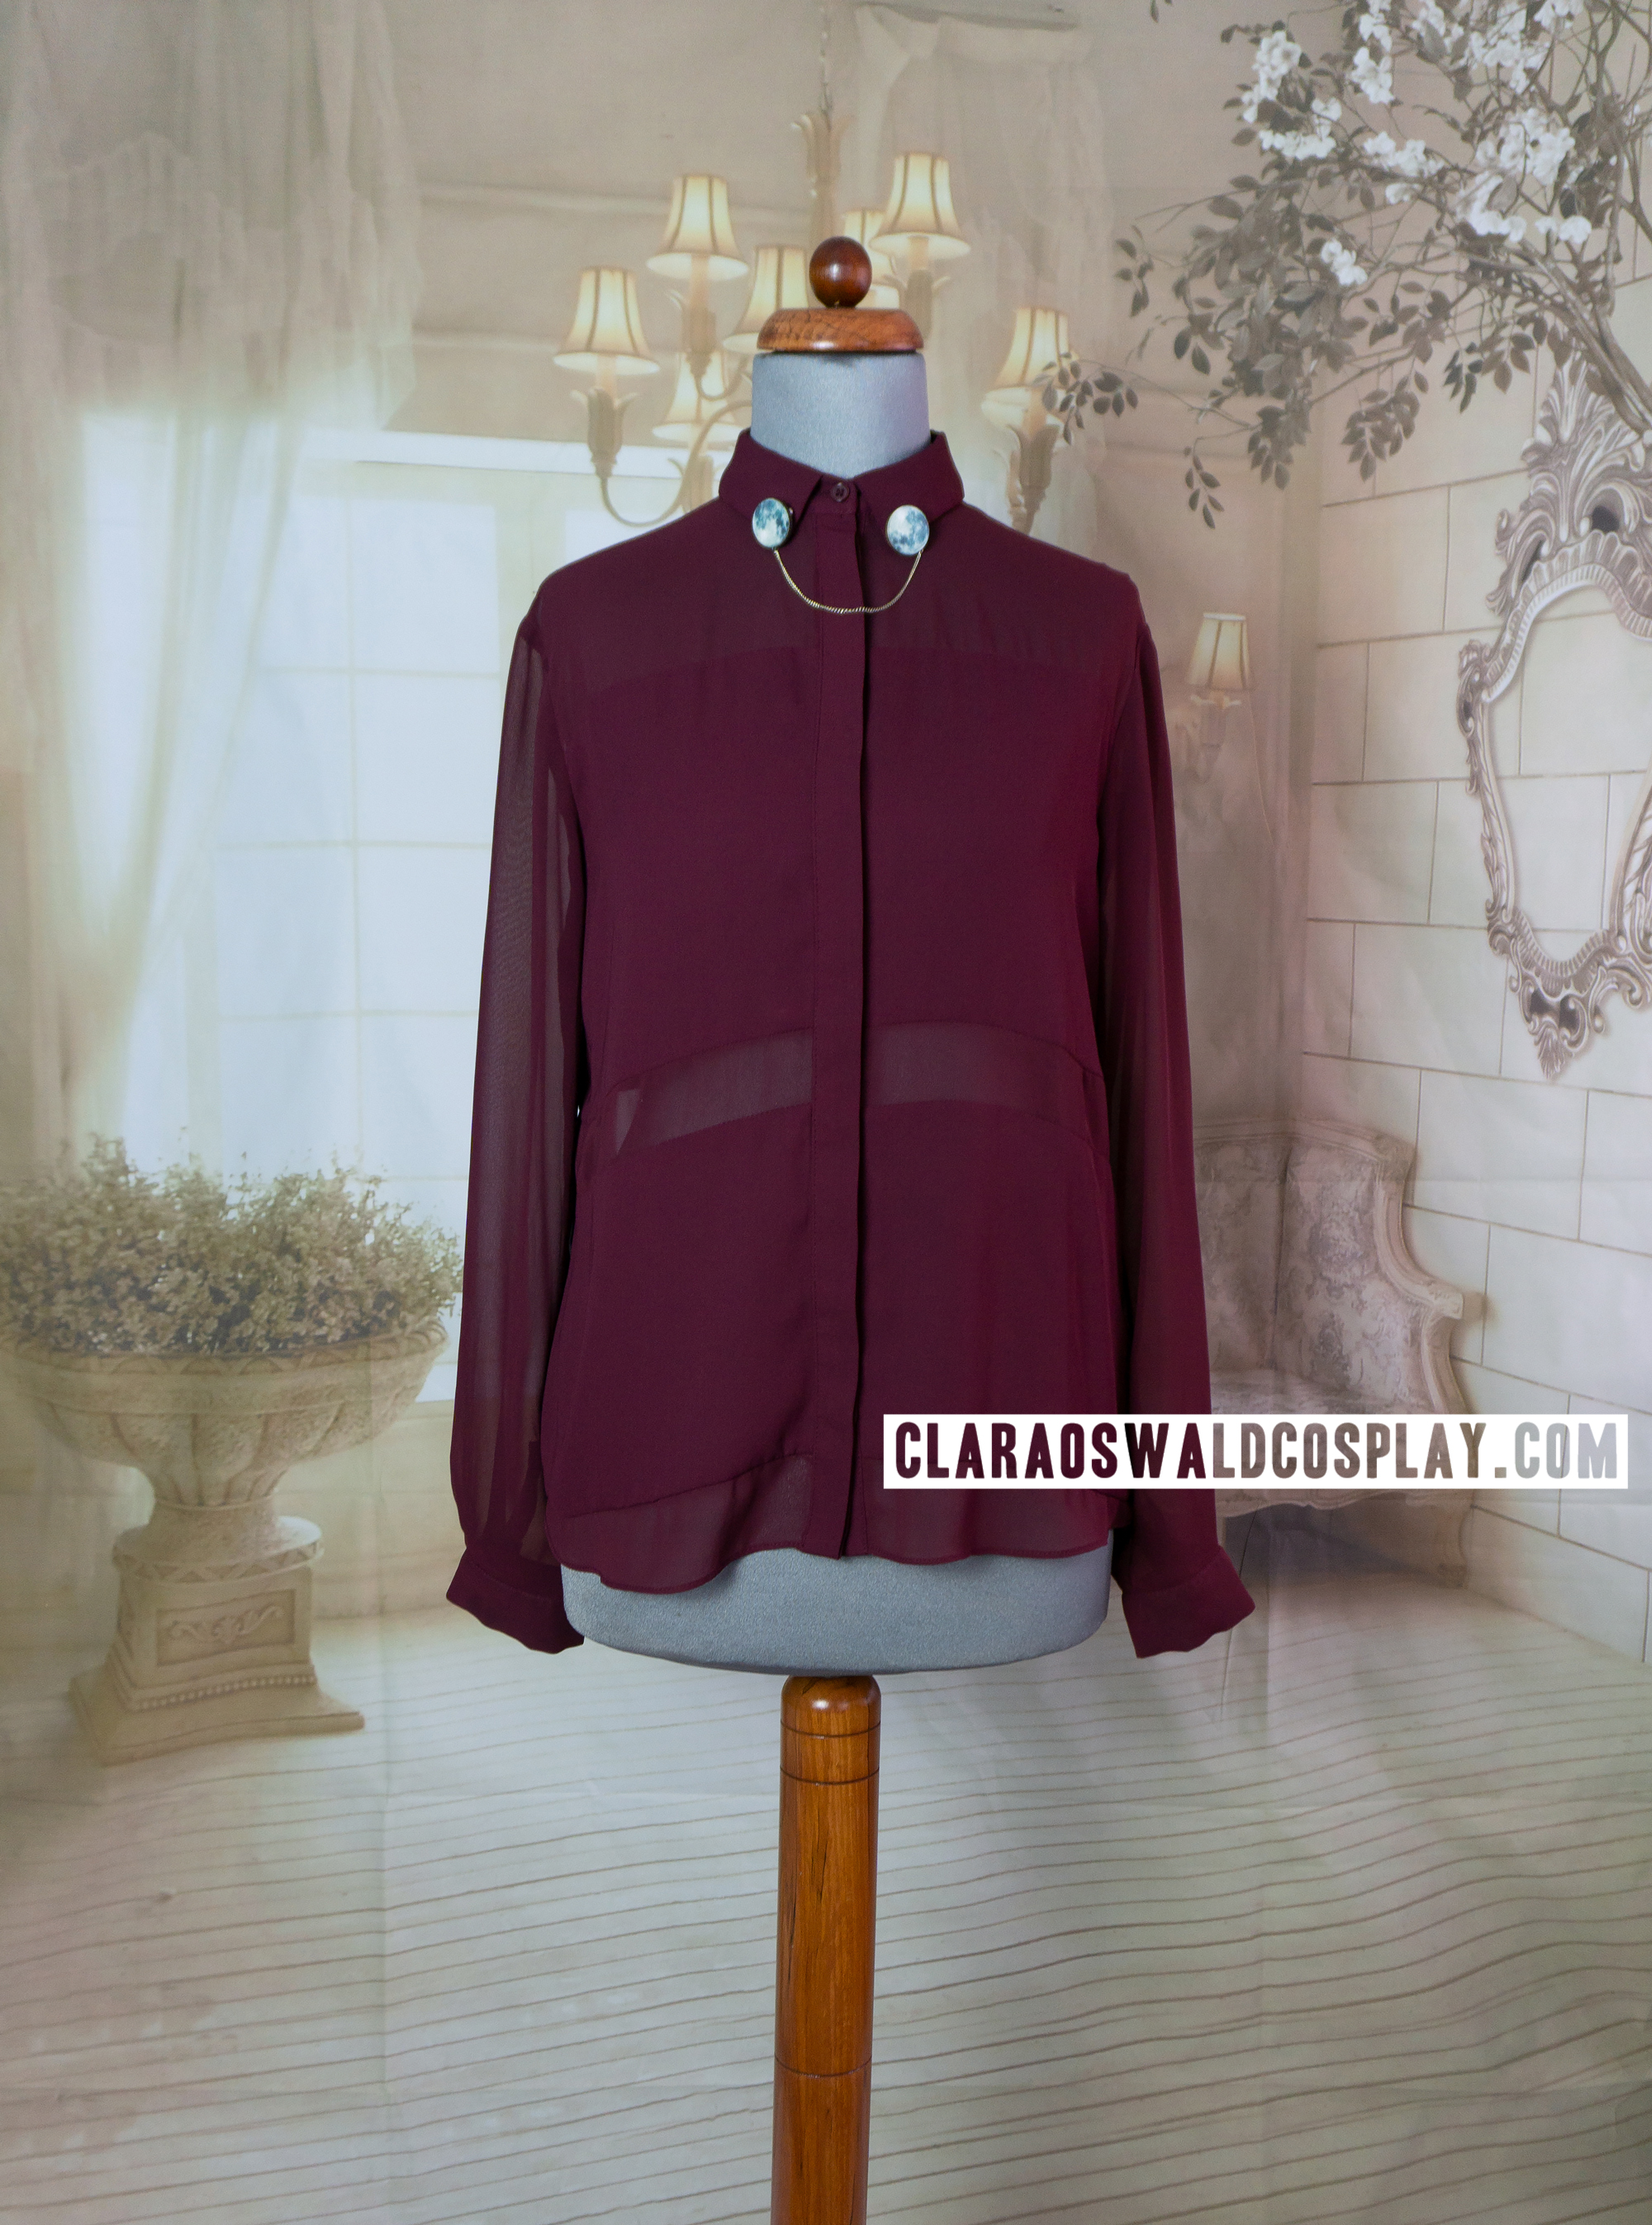 Clara Oswald's Topshop Burgundy Multi-Panel Blouse has two panels even though the lower one is usually hidden under the skirt